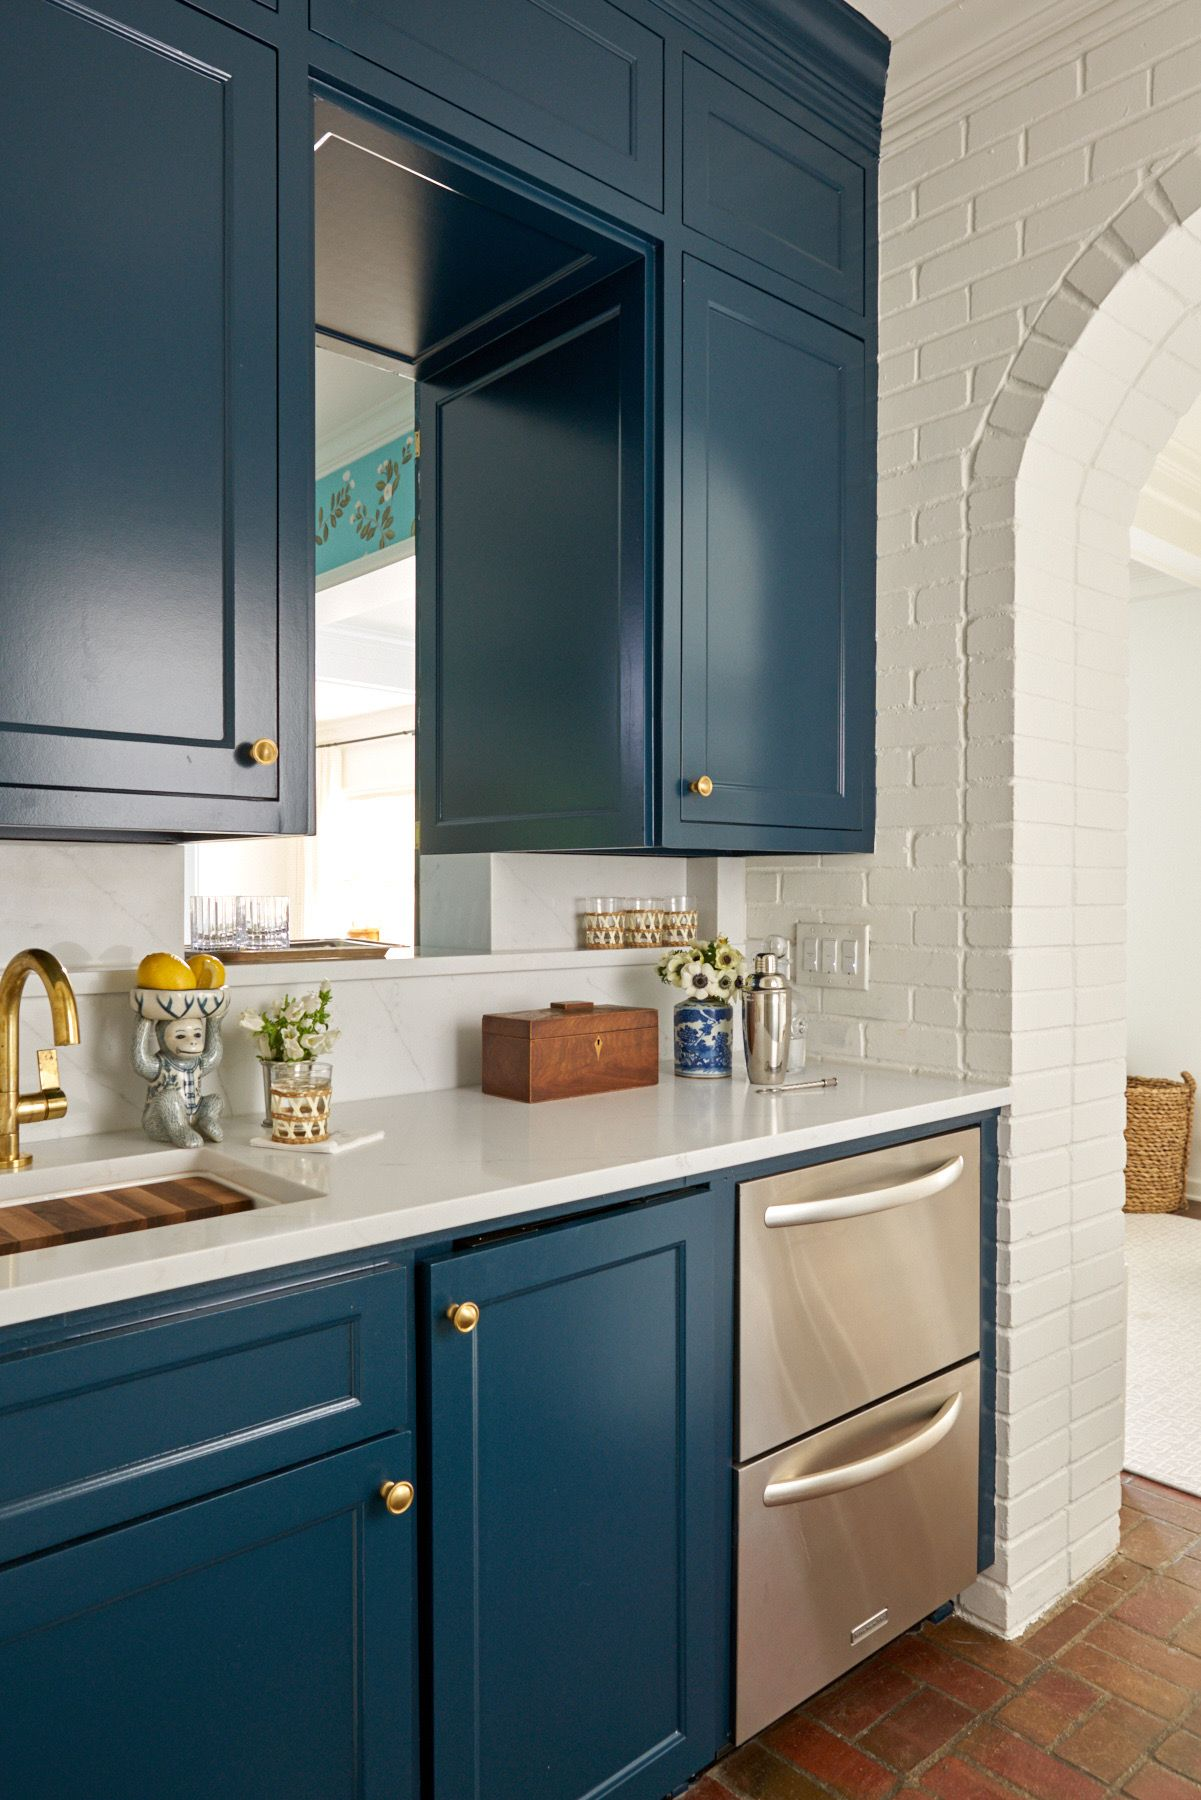 Pretty Traditional Rooms From Amy Berry In 2020 Teal Kitchen Cabinets Teal Kitchen White Marble Countertops